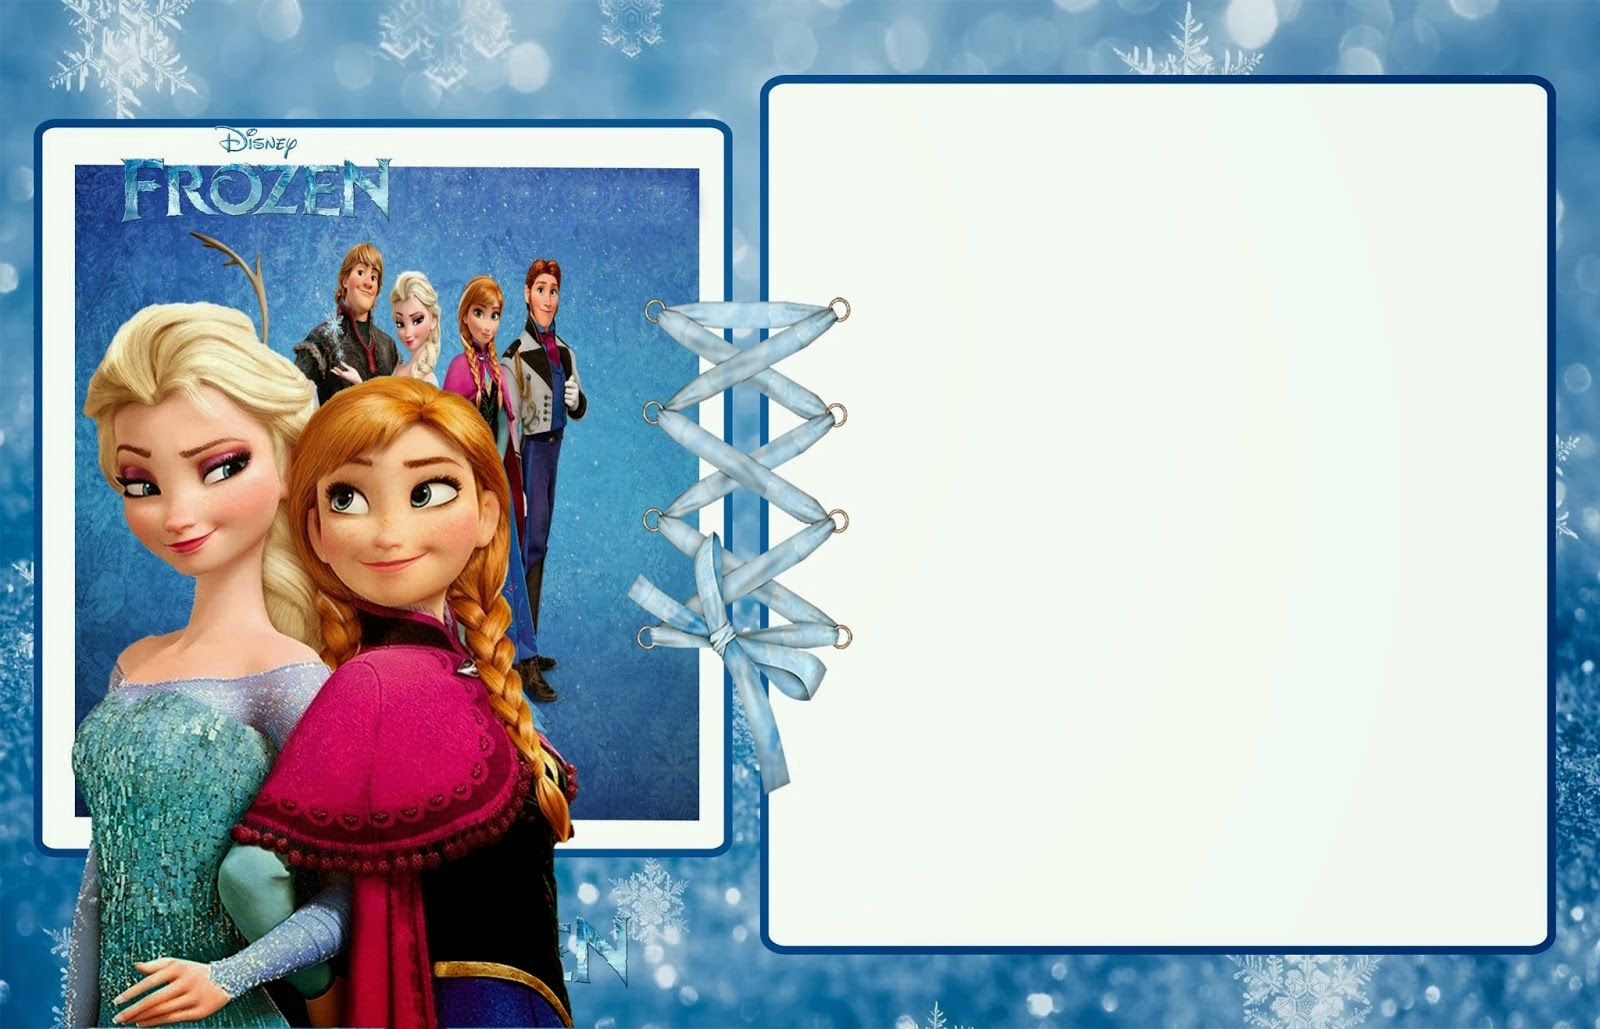 graphic about Frozen Invitations Printable identified as Frozen Occasion: Cost-free Printable Invites. - Oh My Fiesta! inside of